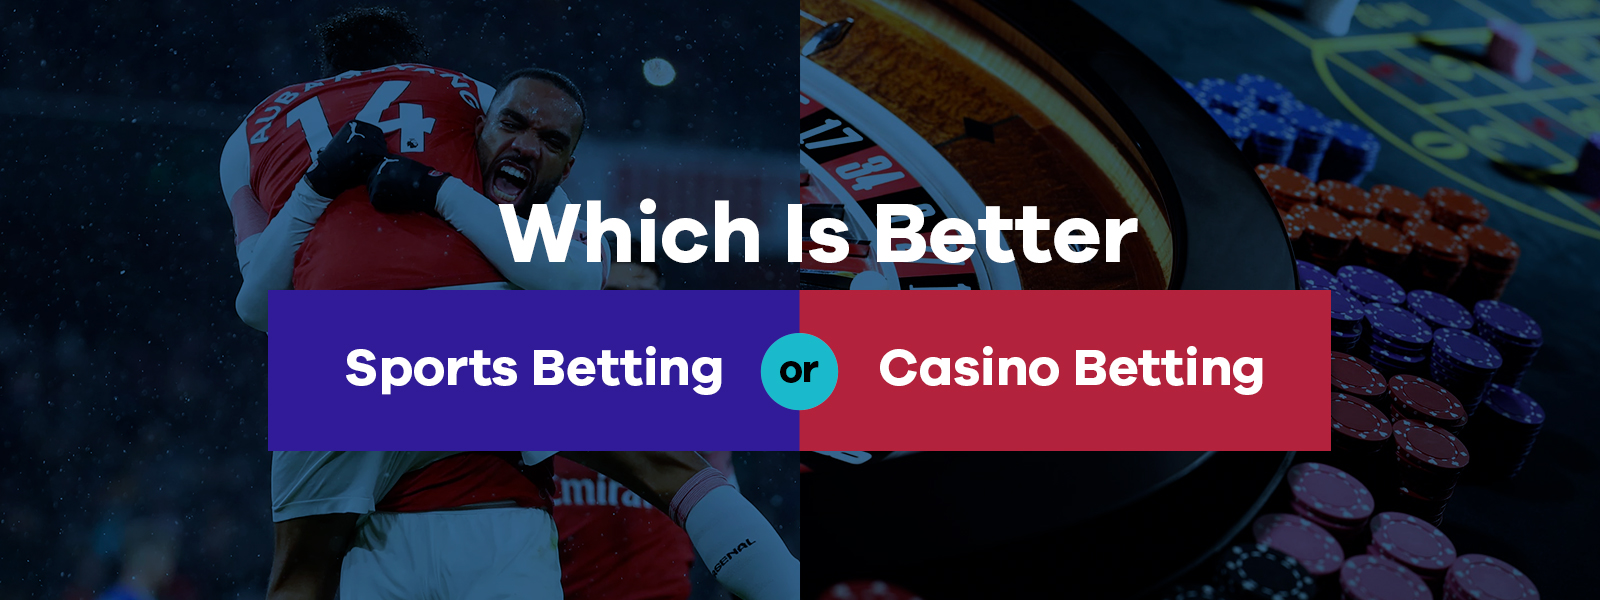 Which Is Better? Sports Betting or Casino Betting?